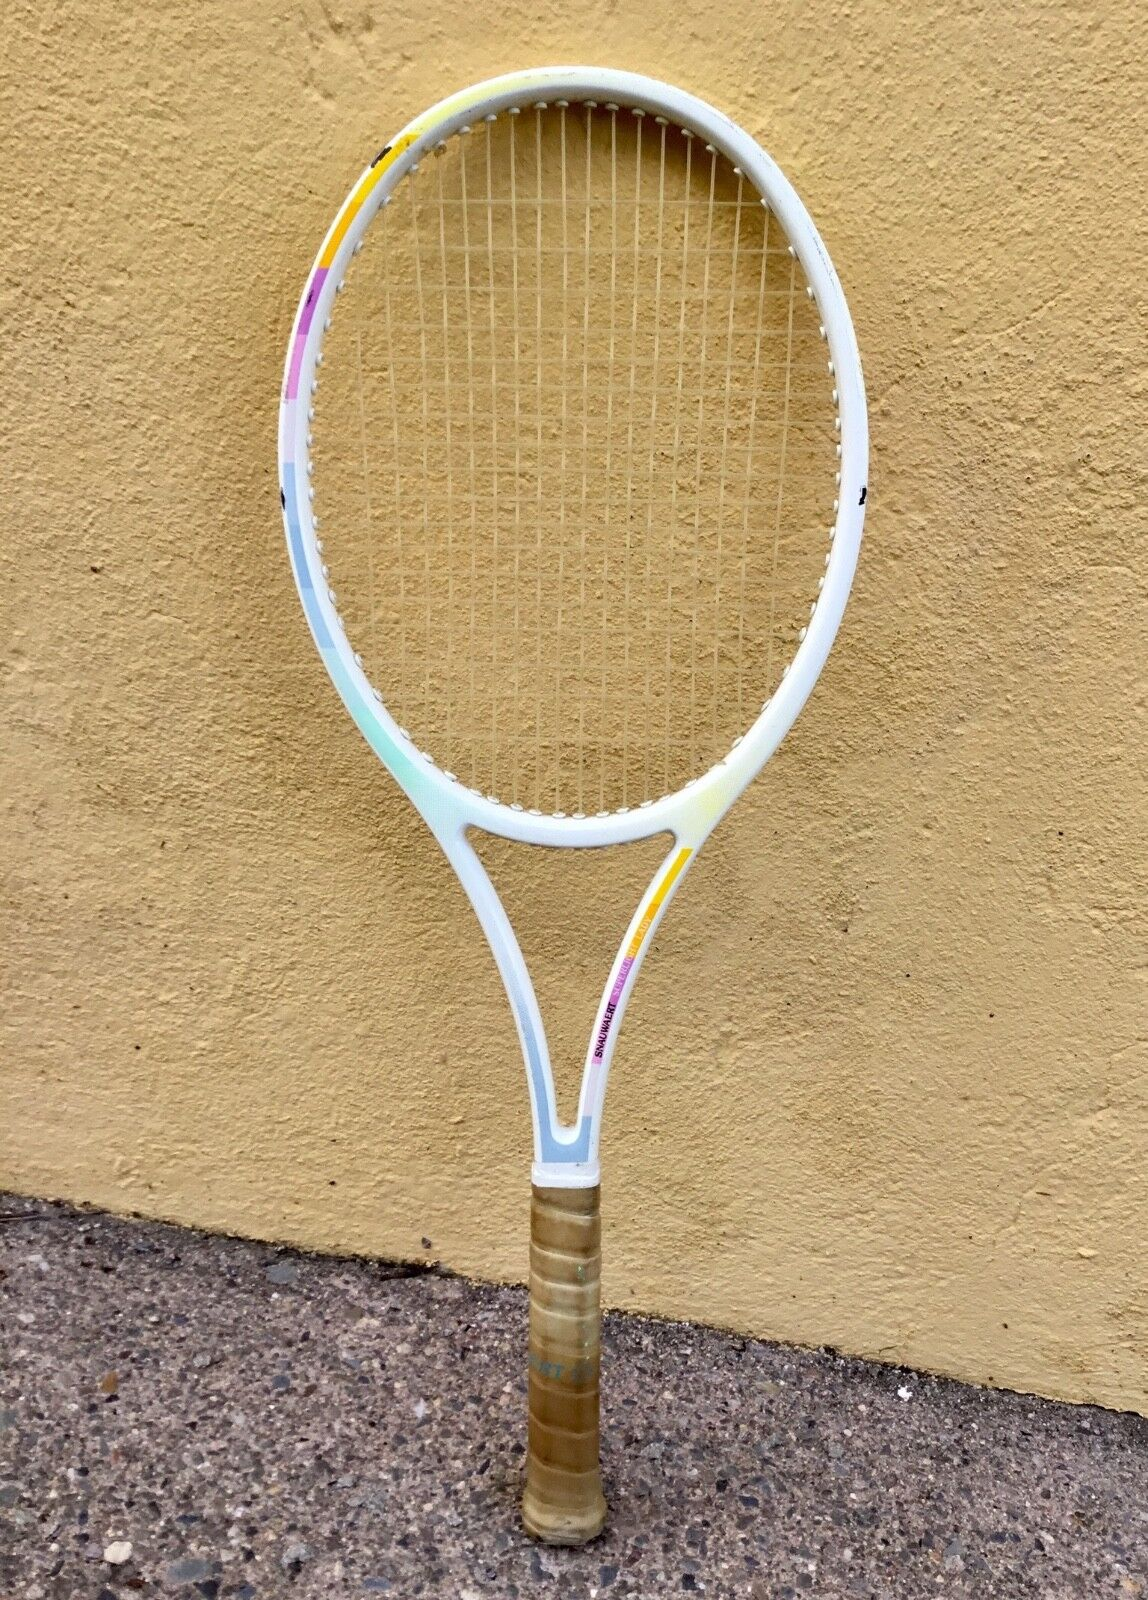 TENNIS racket Brand SNAUWAERT model SUPERLIGTH LADY Made in BELGIUM